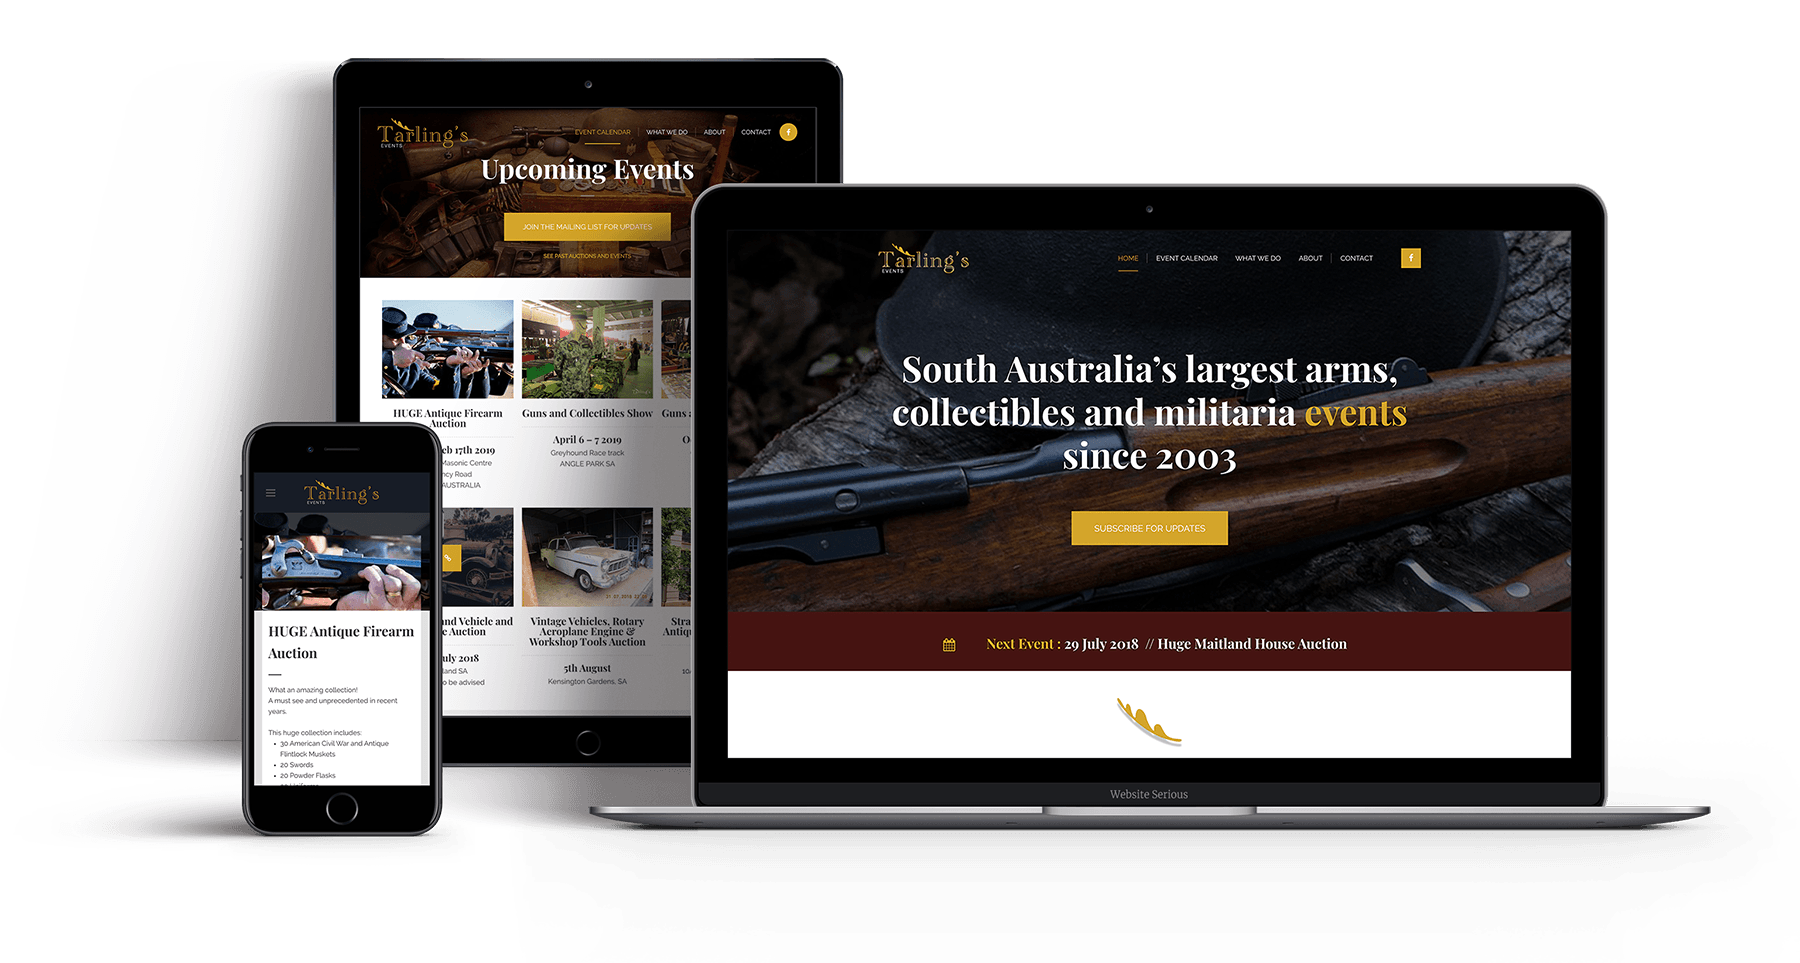 Tarlings Events website by Website Serious